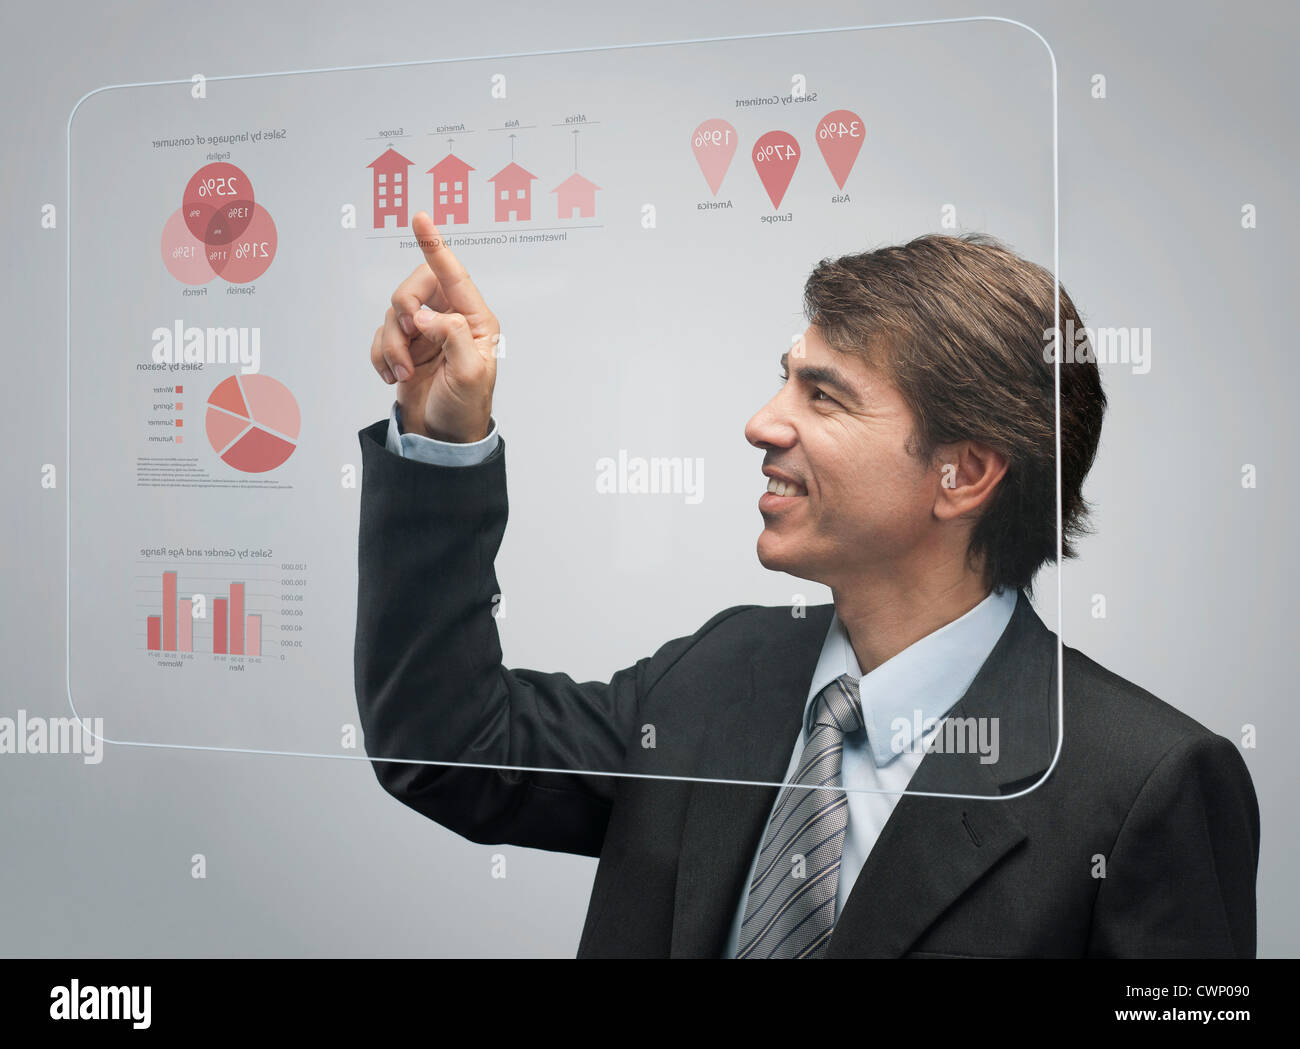 Businessman using advanced touch screen technology to view sales data - Stock Image